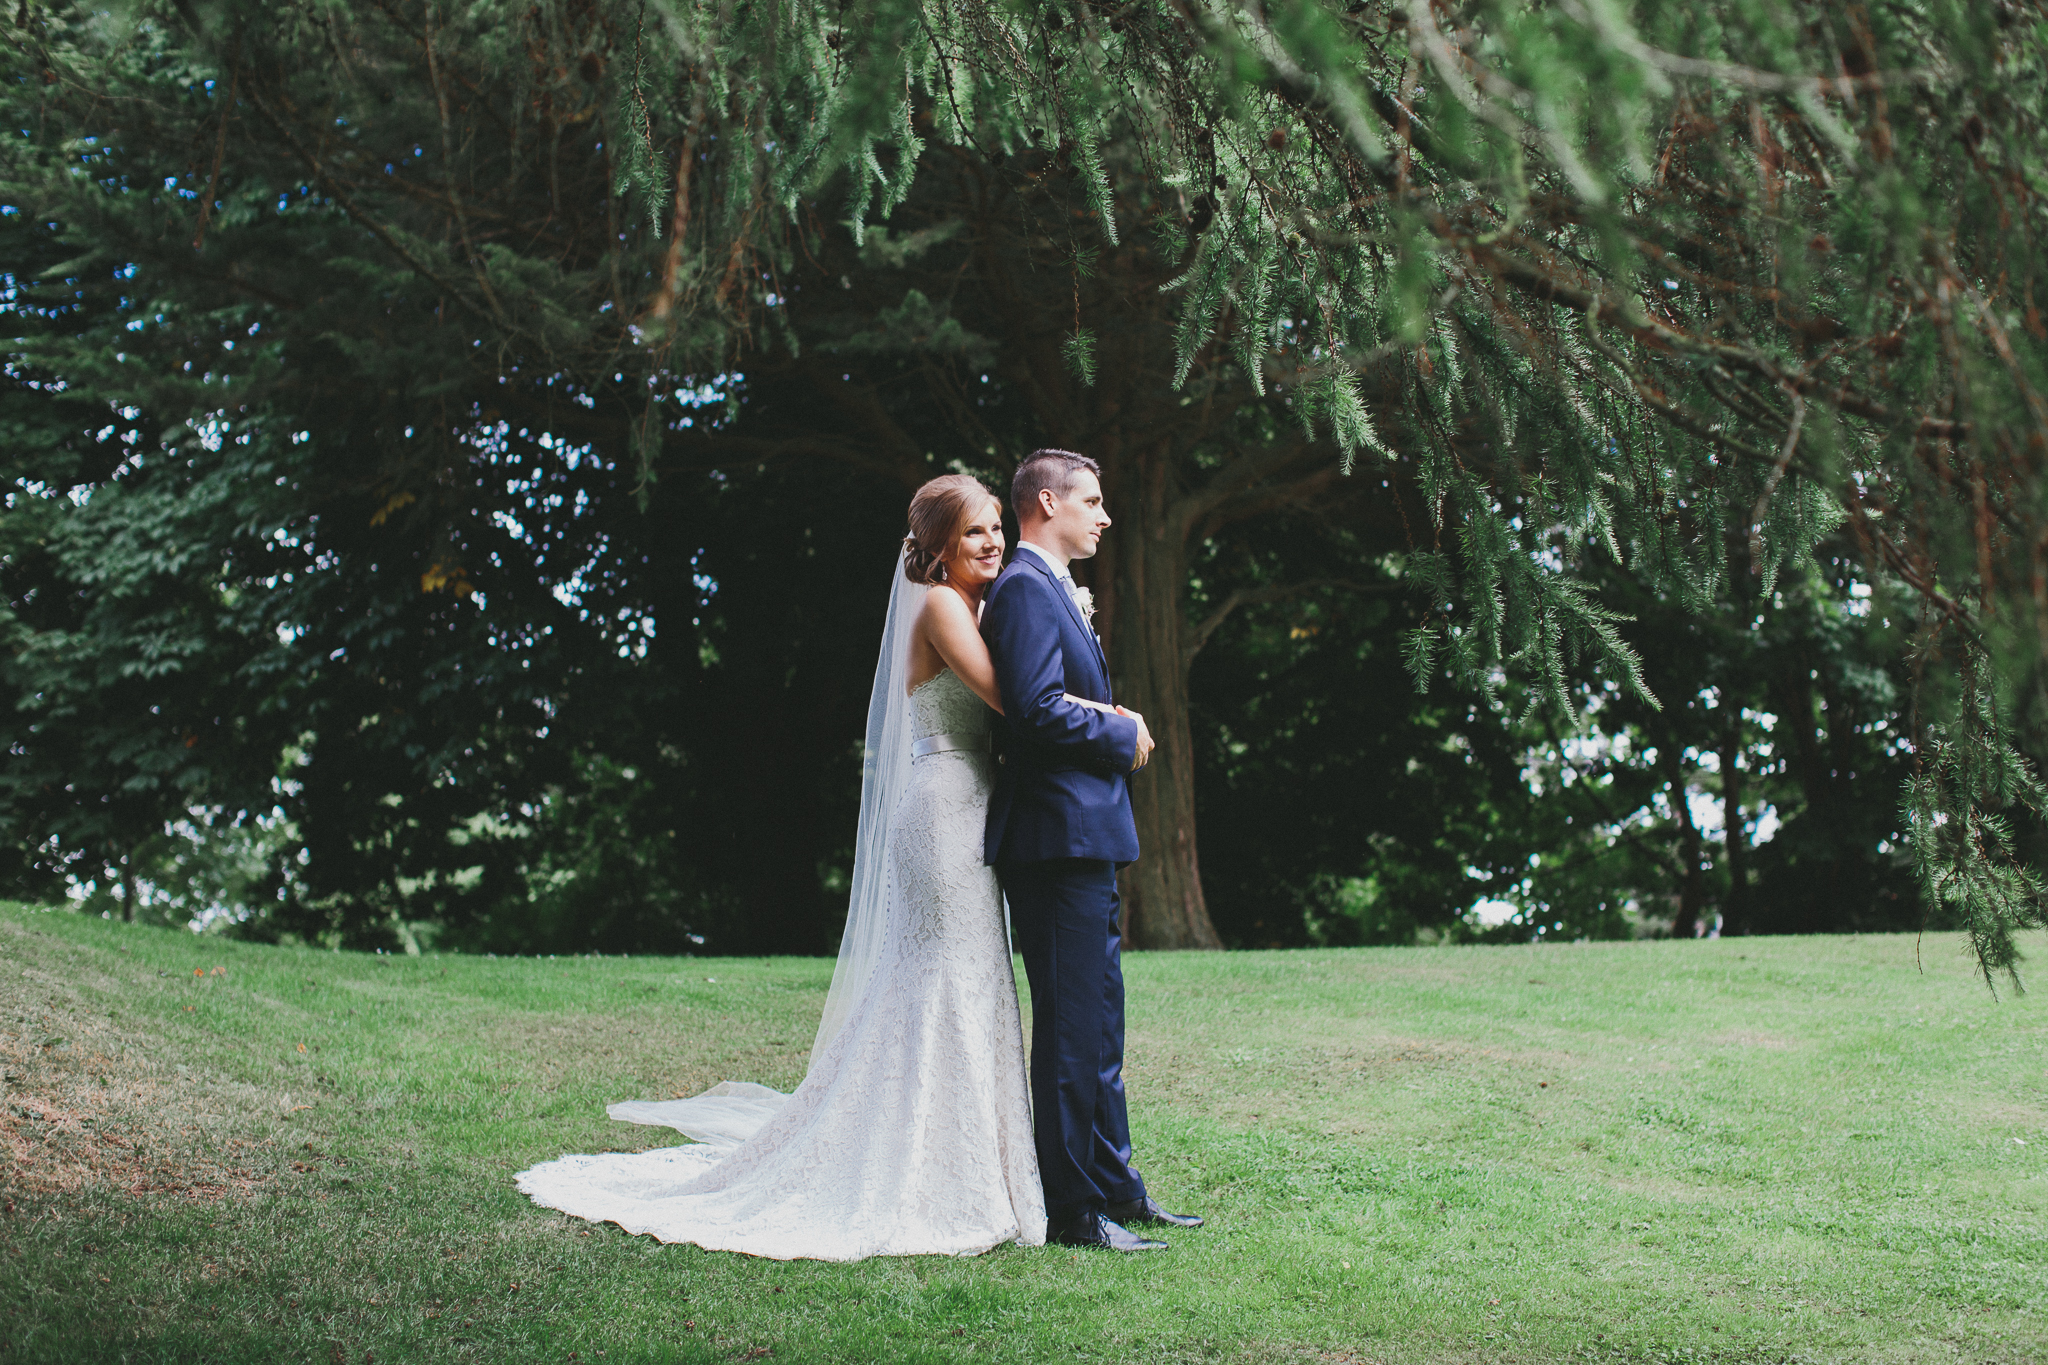 Newlywed Portraits in Omagh, County Tyrone Wedding Photographer